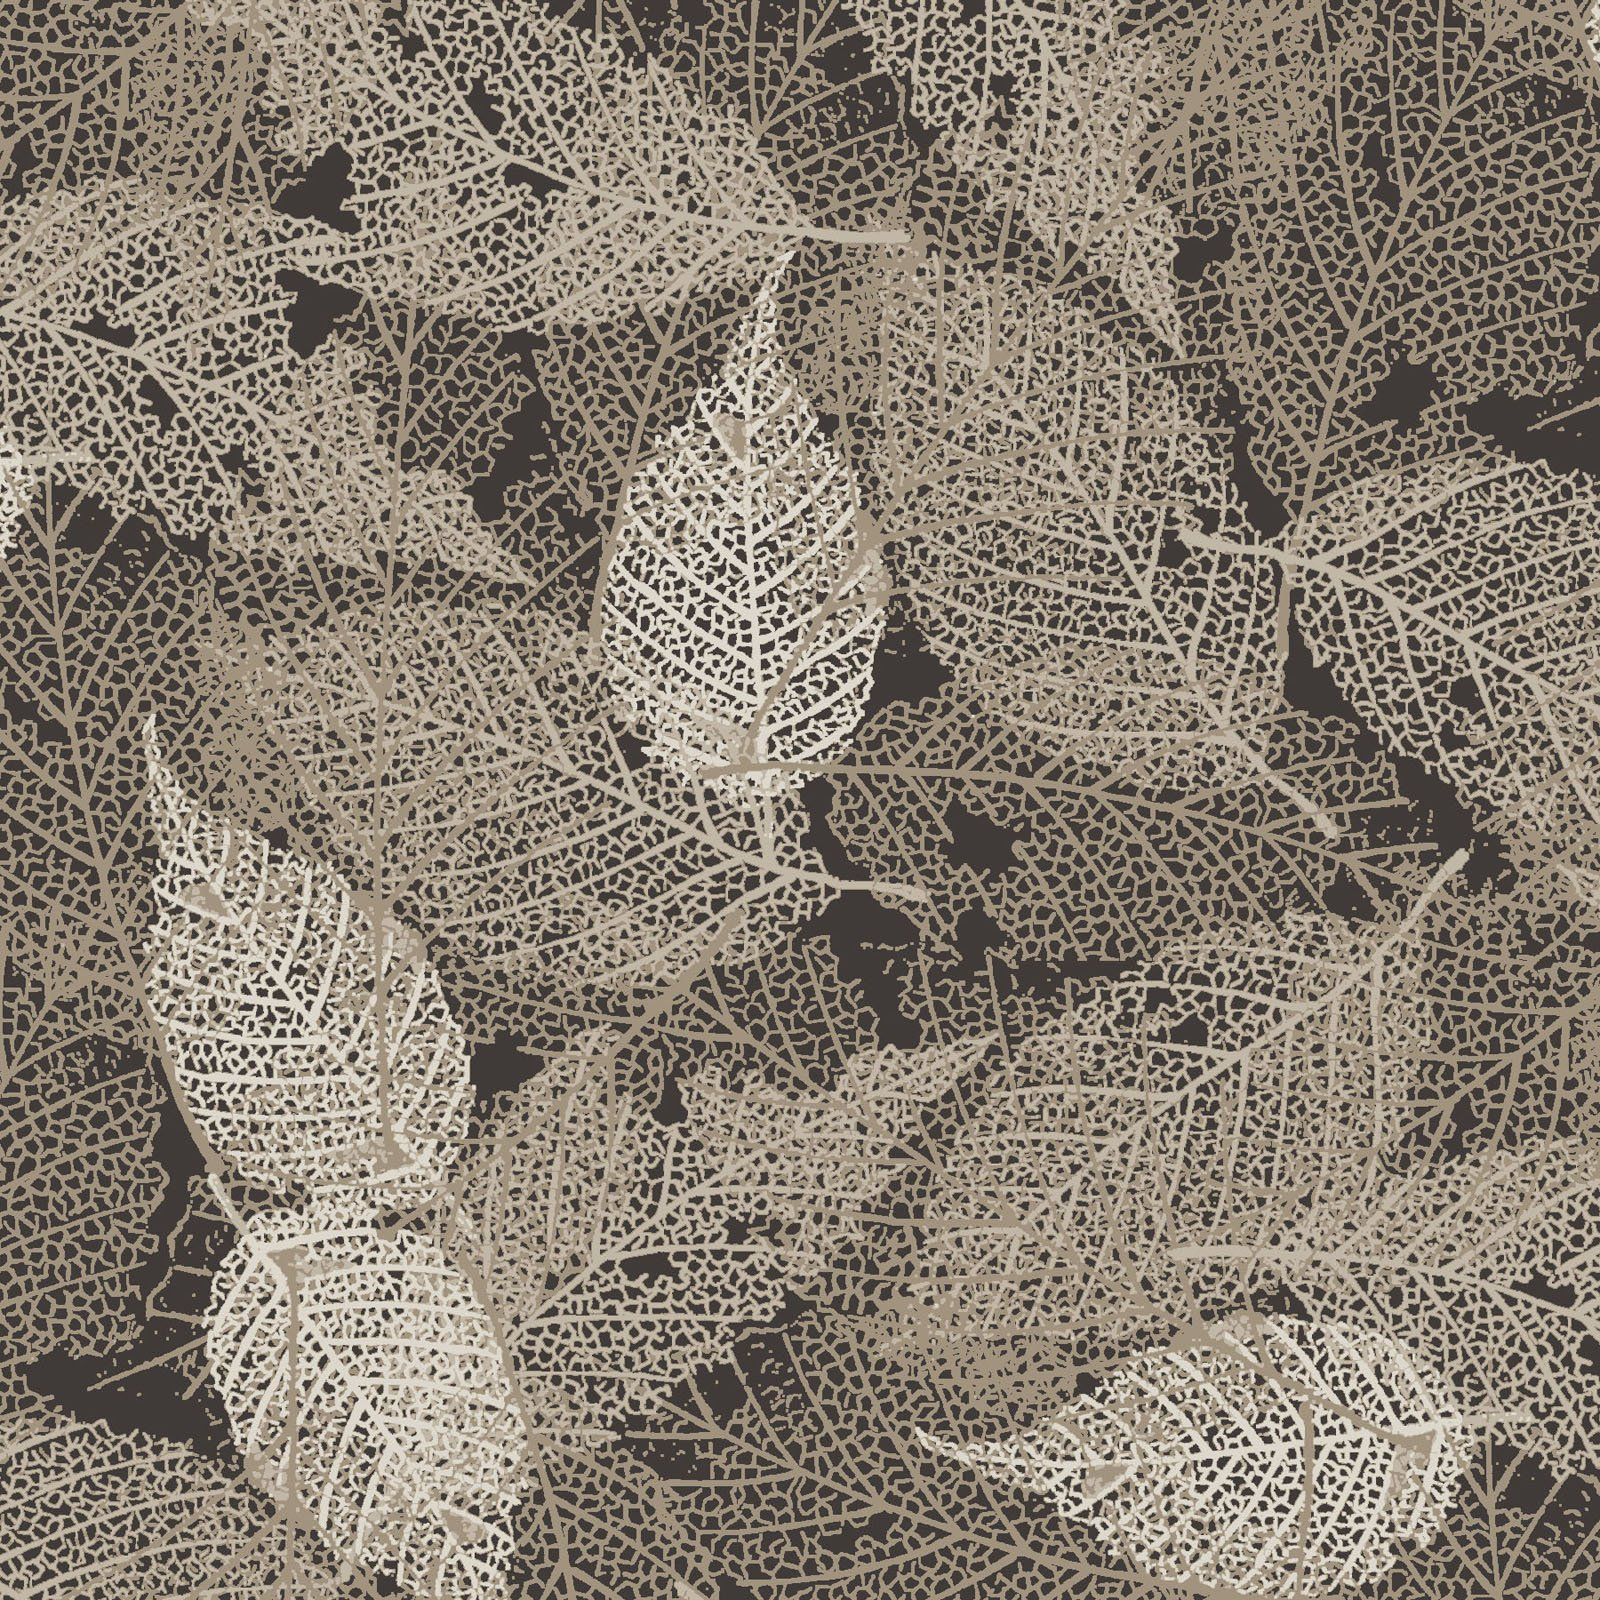 FOLI-4478 GR - FOLIAGE BY P&B BOUTIQUE TEXTURE LEAVES GREY - ARRIVING IN MAY 2021